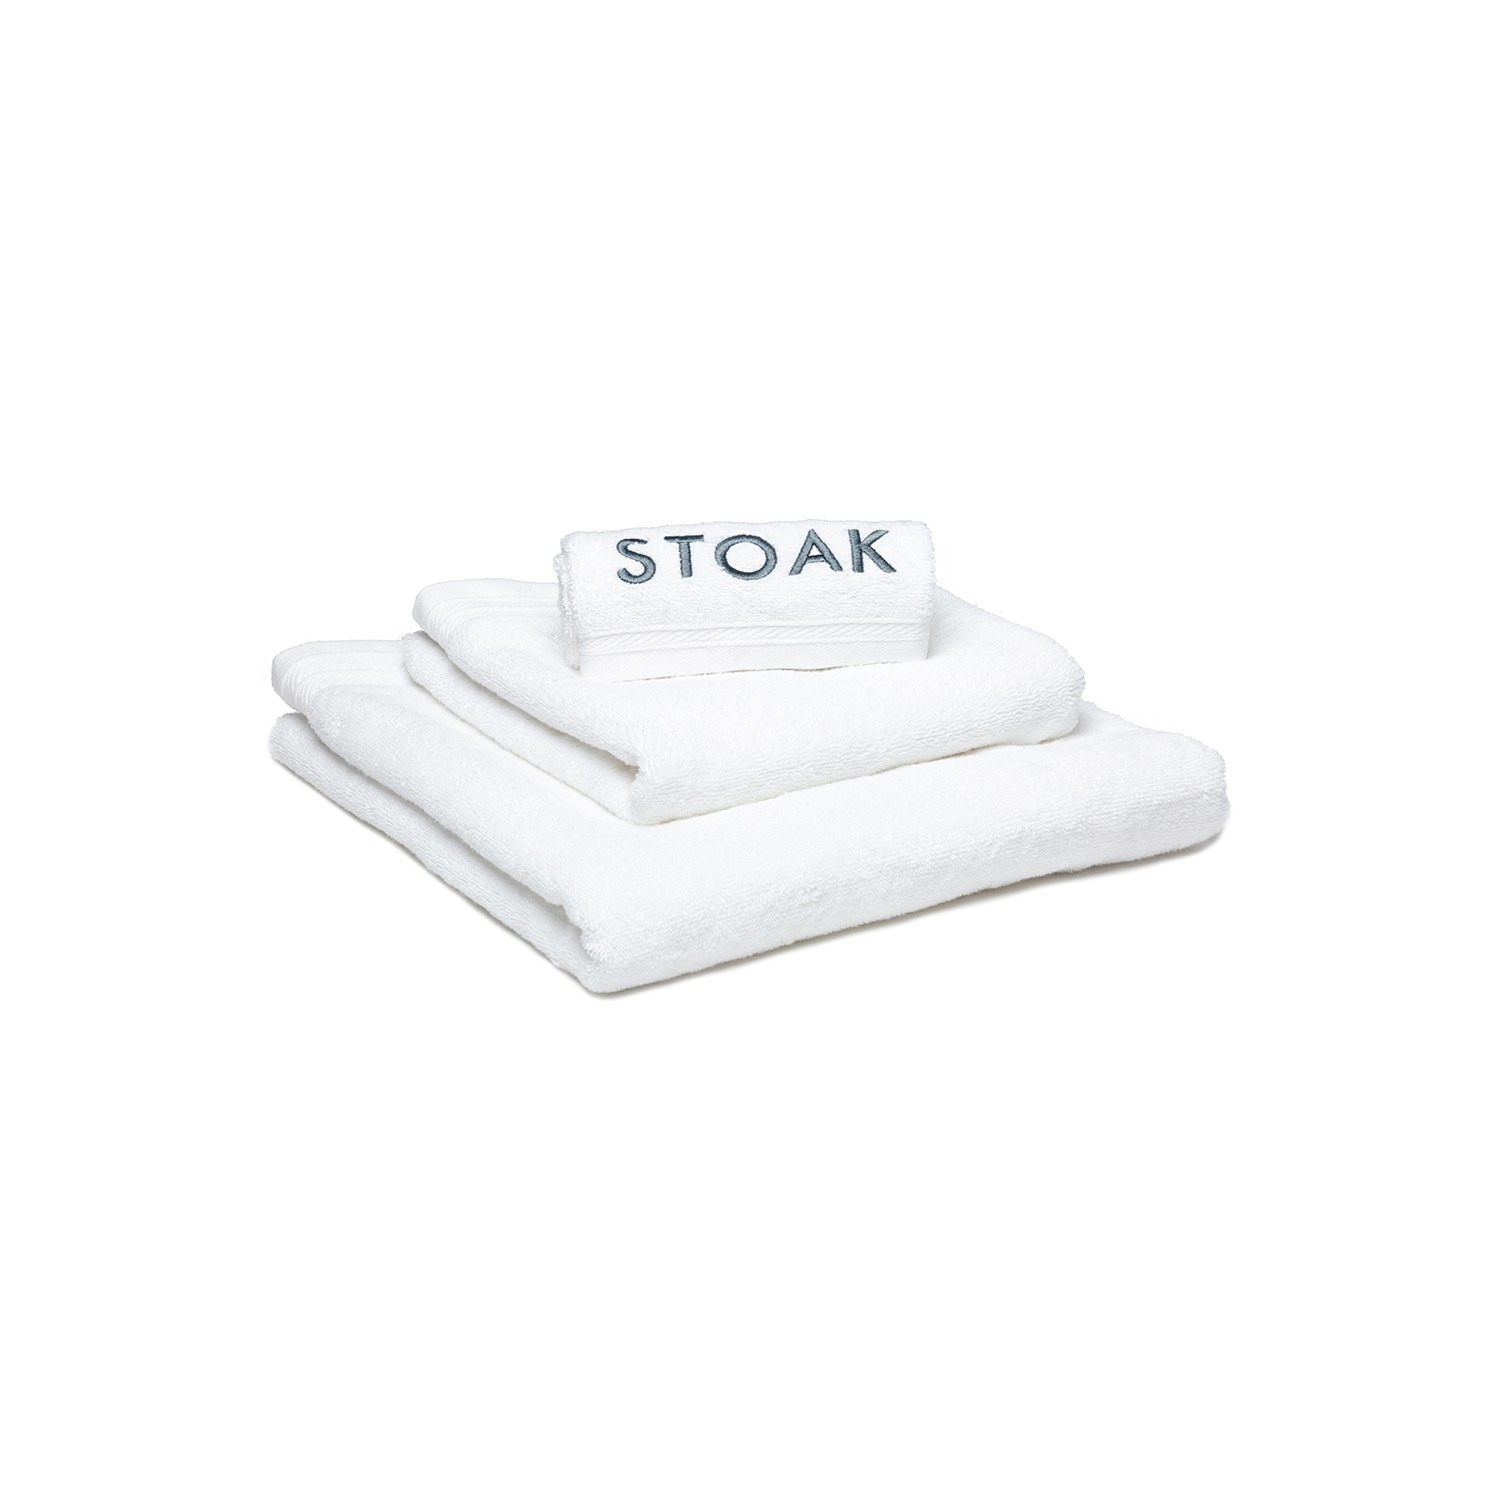 STOAK WHITE DIAMOND TOWEL (Organic Cotton)